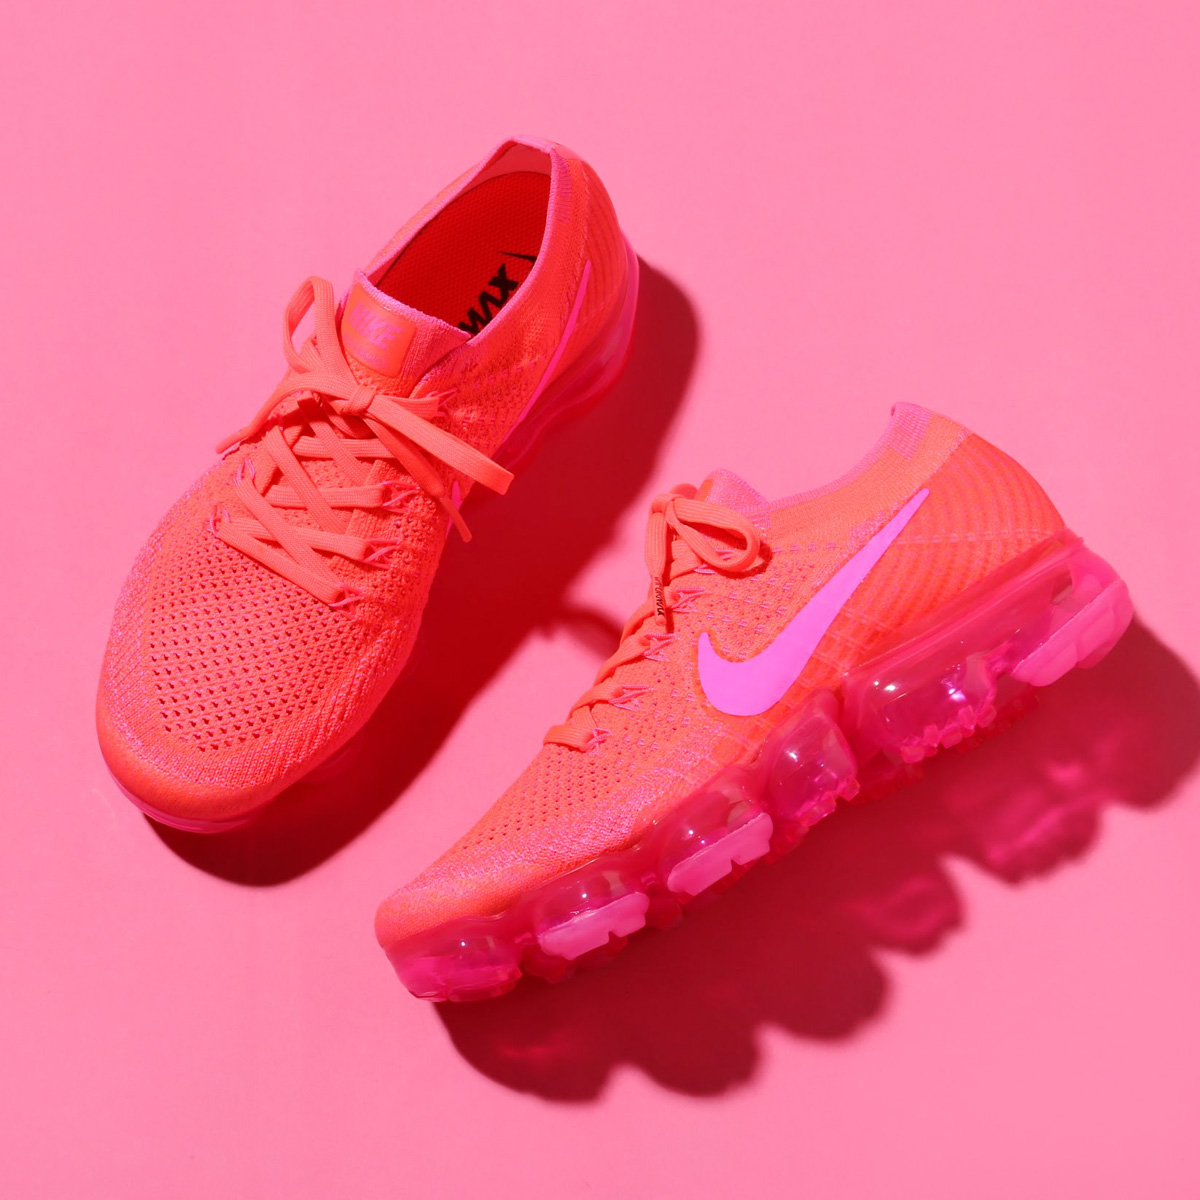 3e453c8f92dca NIKE WMNS AIR VAPORMAX FLYKNIT (Nike women air vapor max fried food knit) (HYPER  PUNCH PINK BLAST-HOT PUNCH-BLACK) 18SP-S